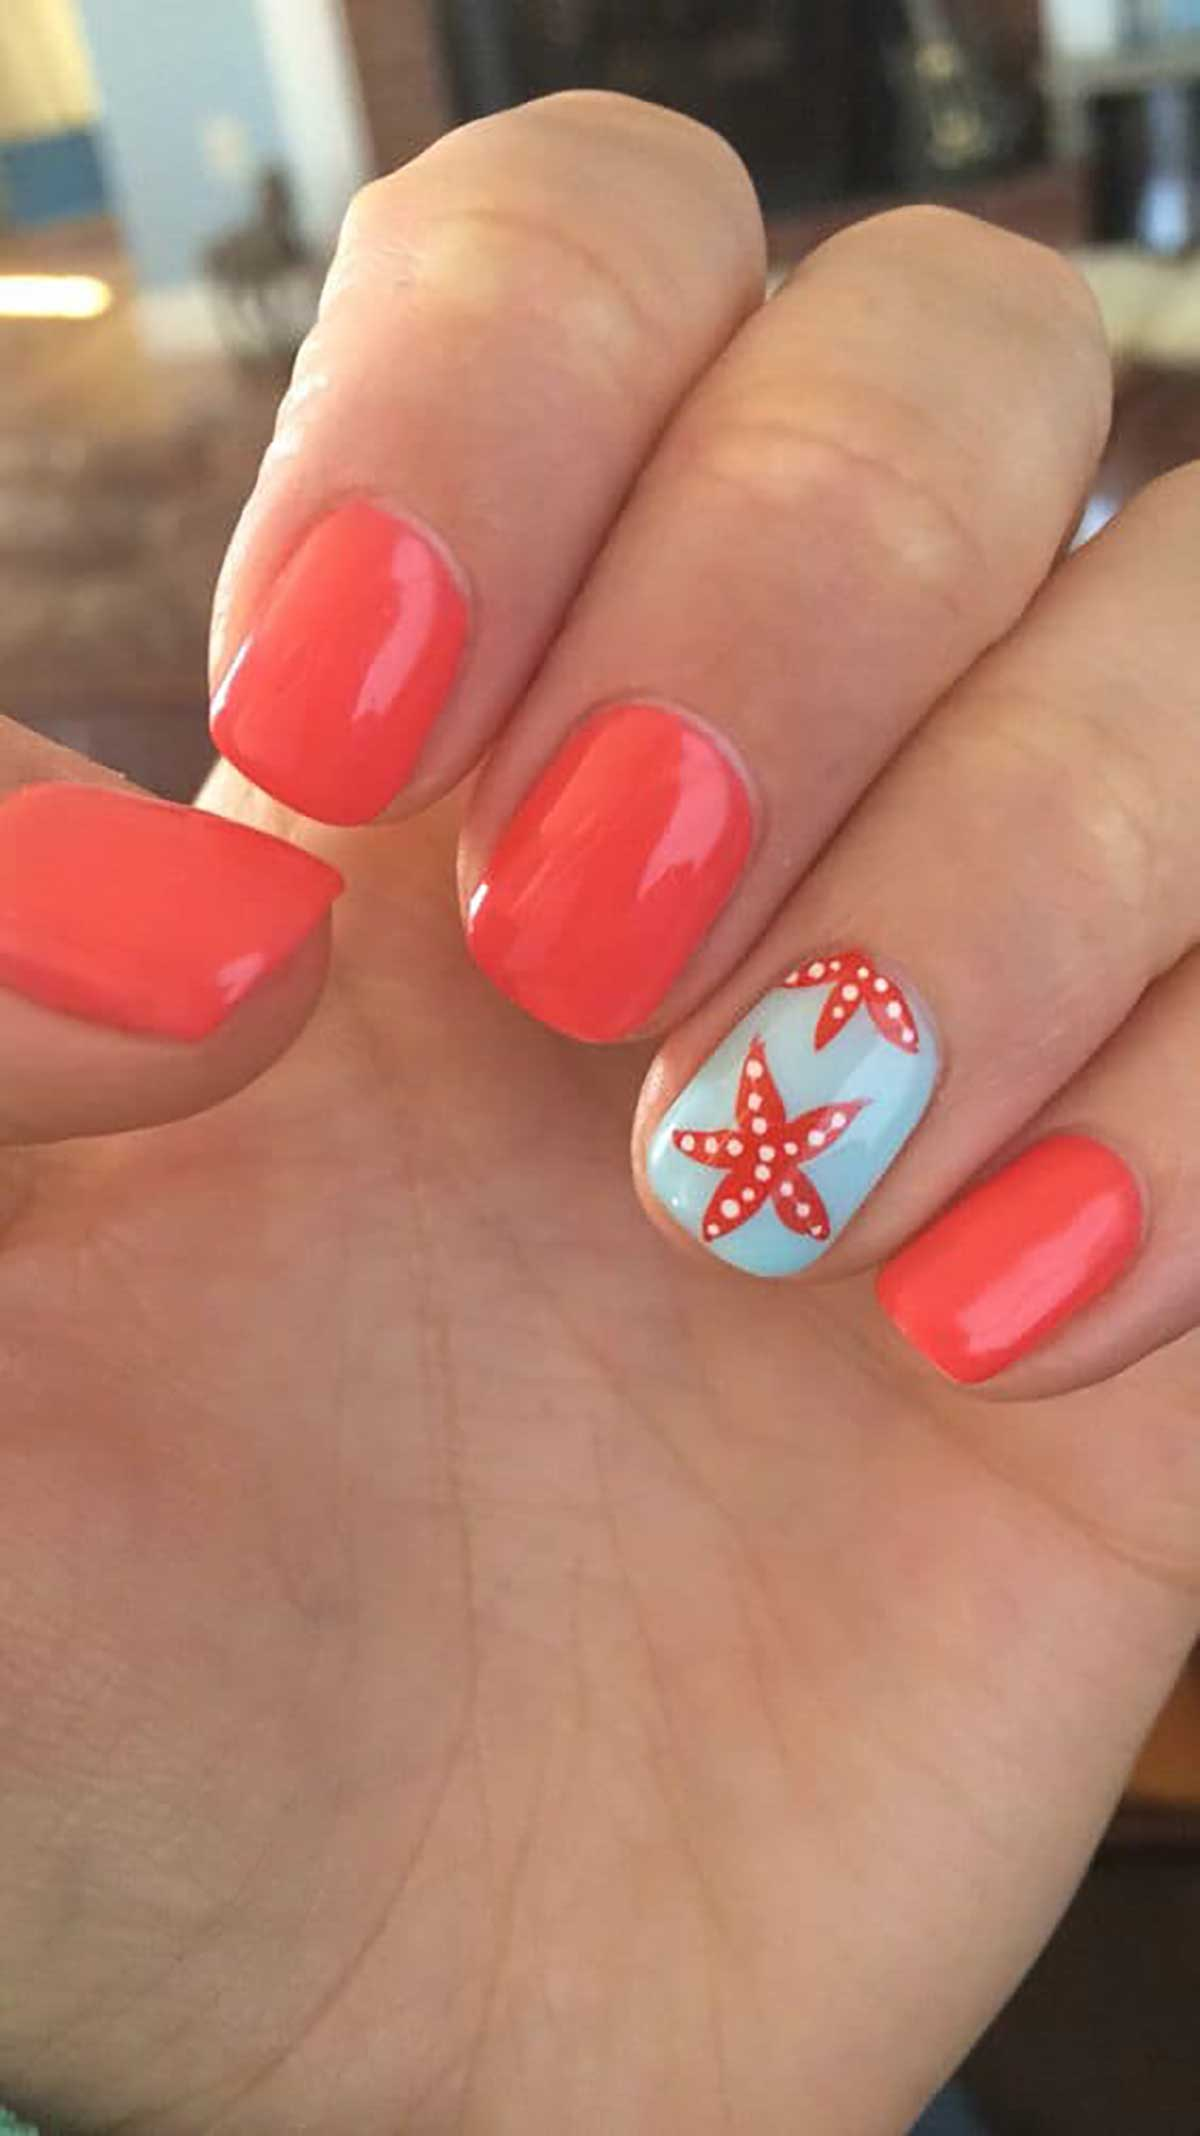 Brighten Up Your Nails: Summer Nail Art Ideas | Cowgirl Magazine